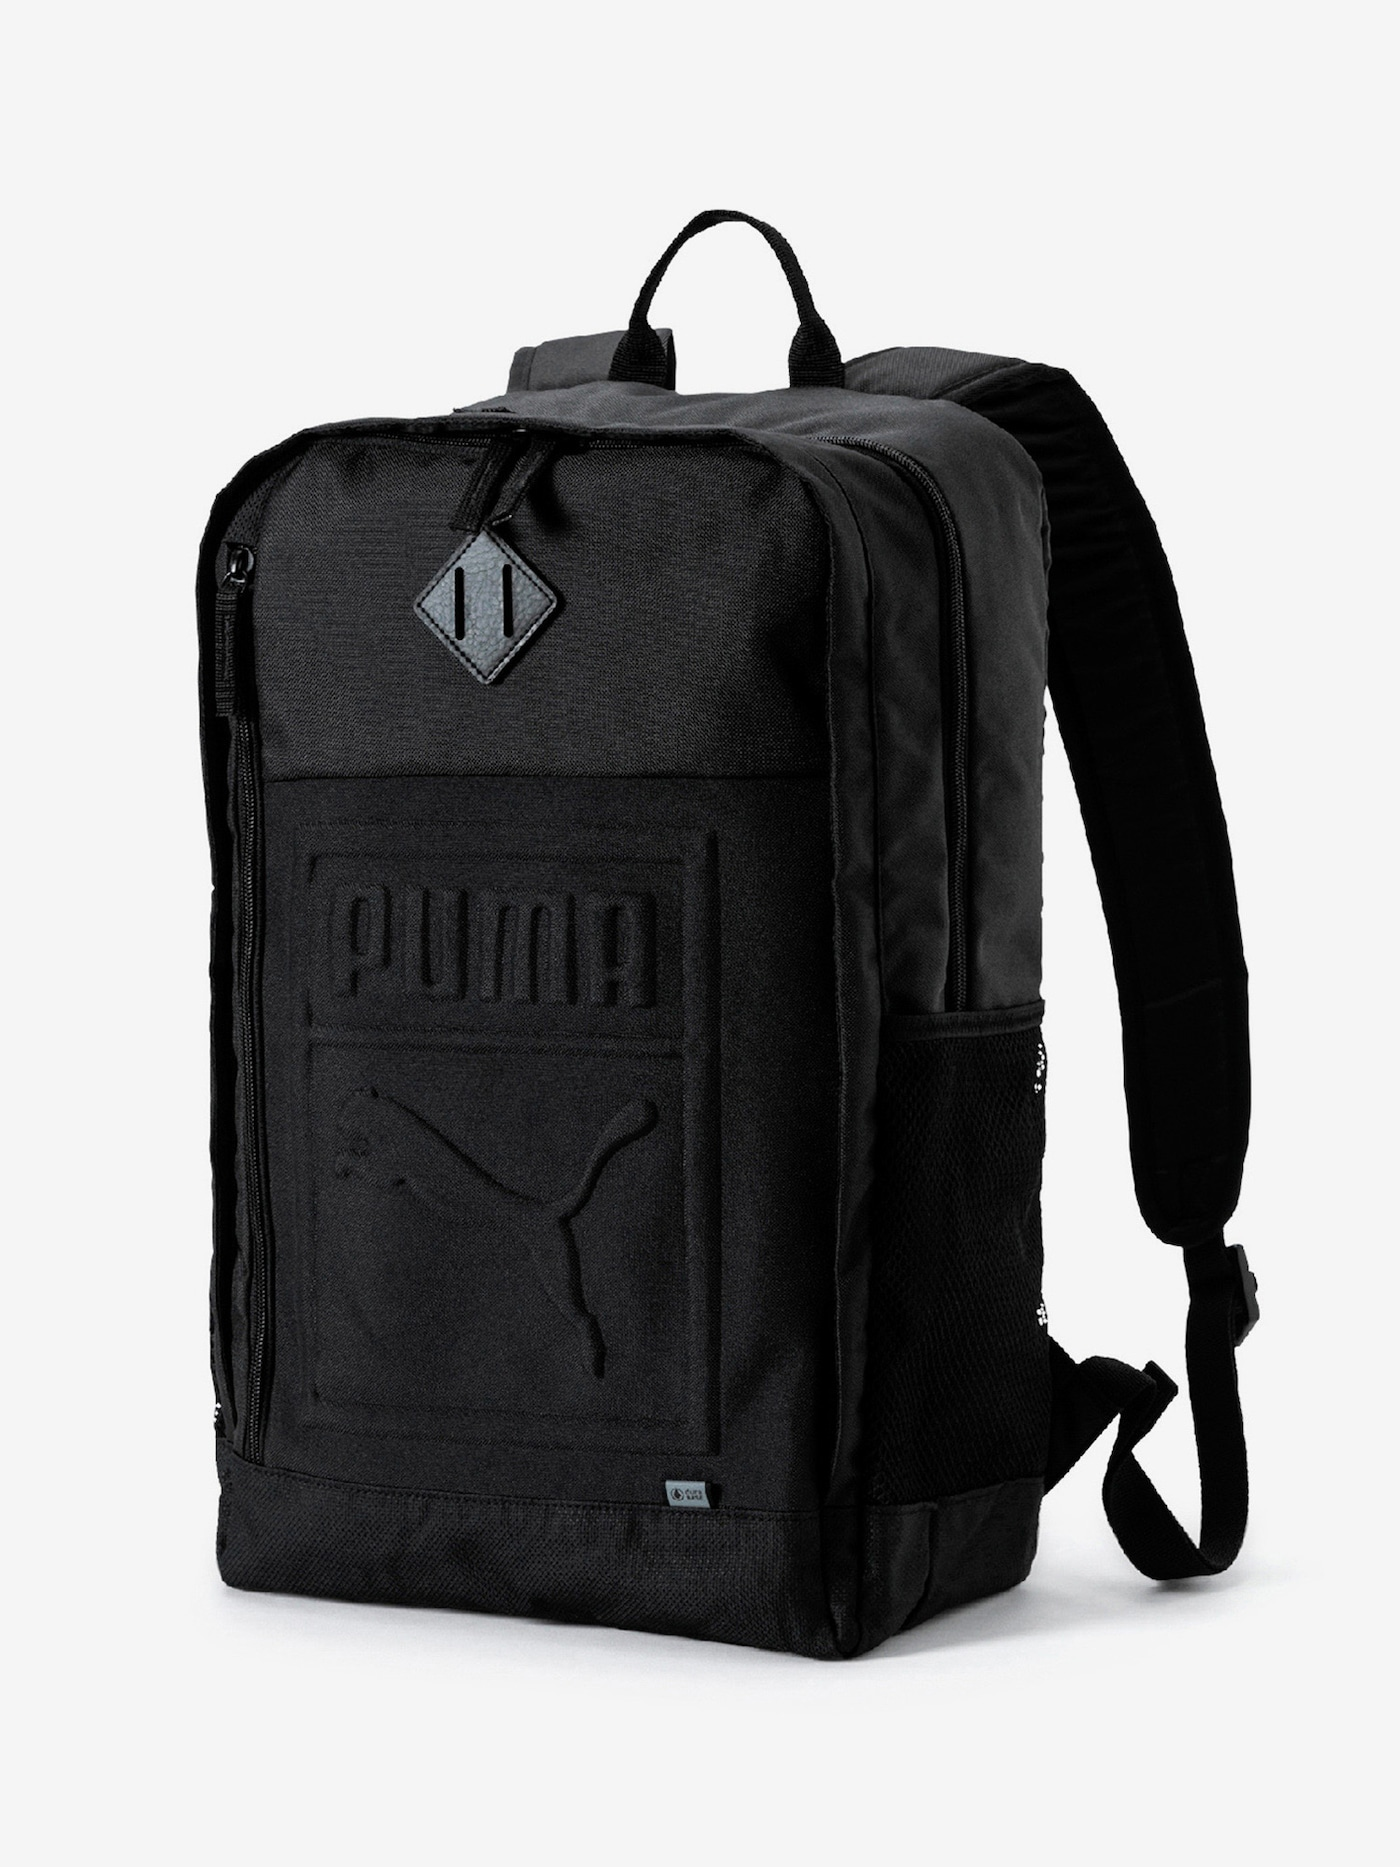 Puma Backpack with backpack